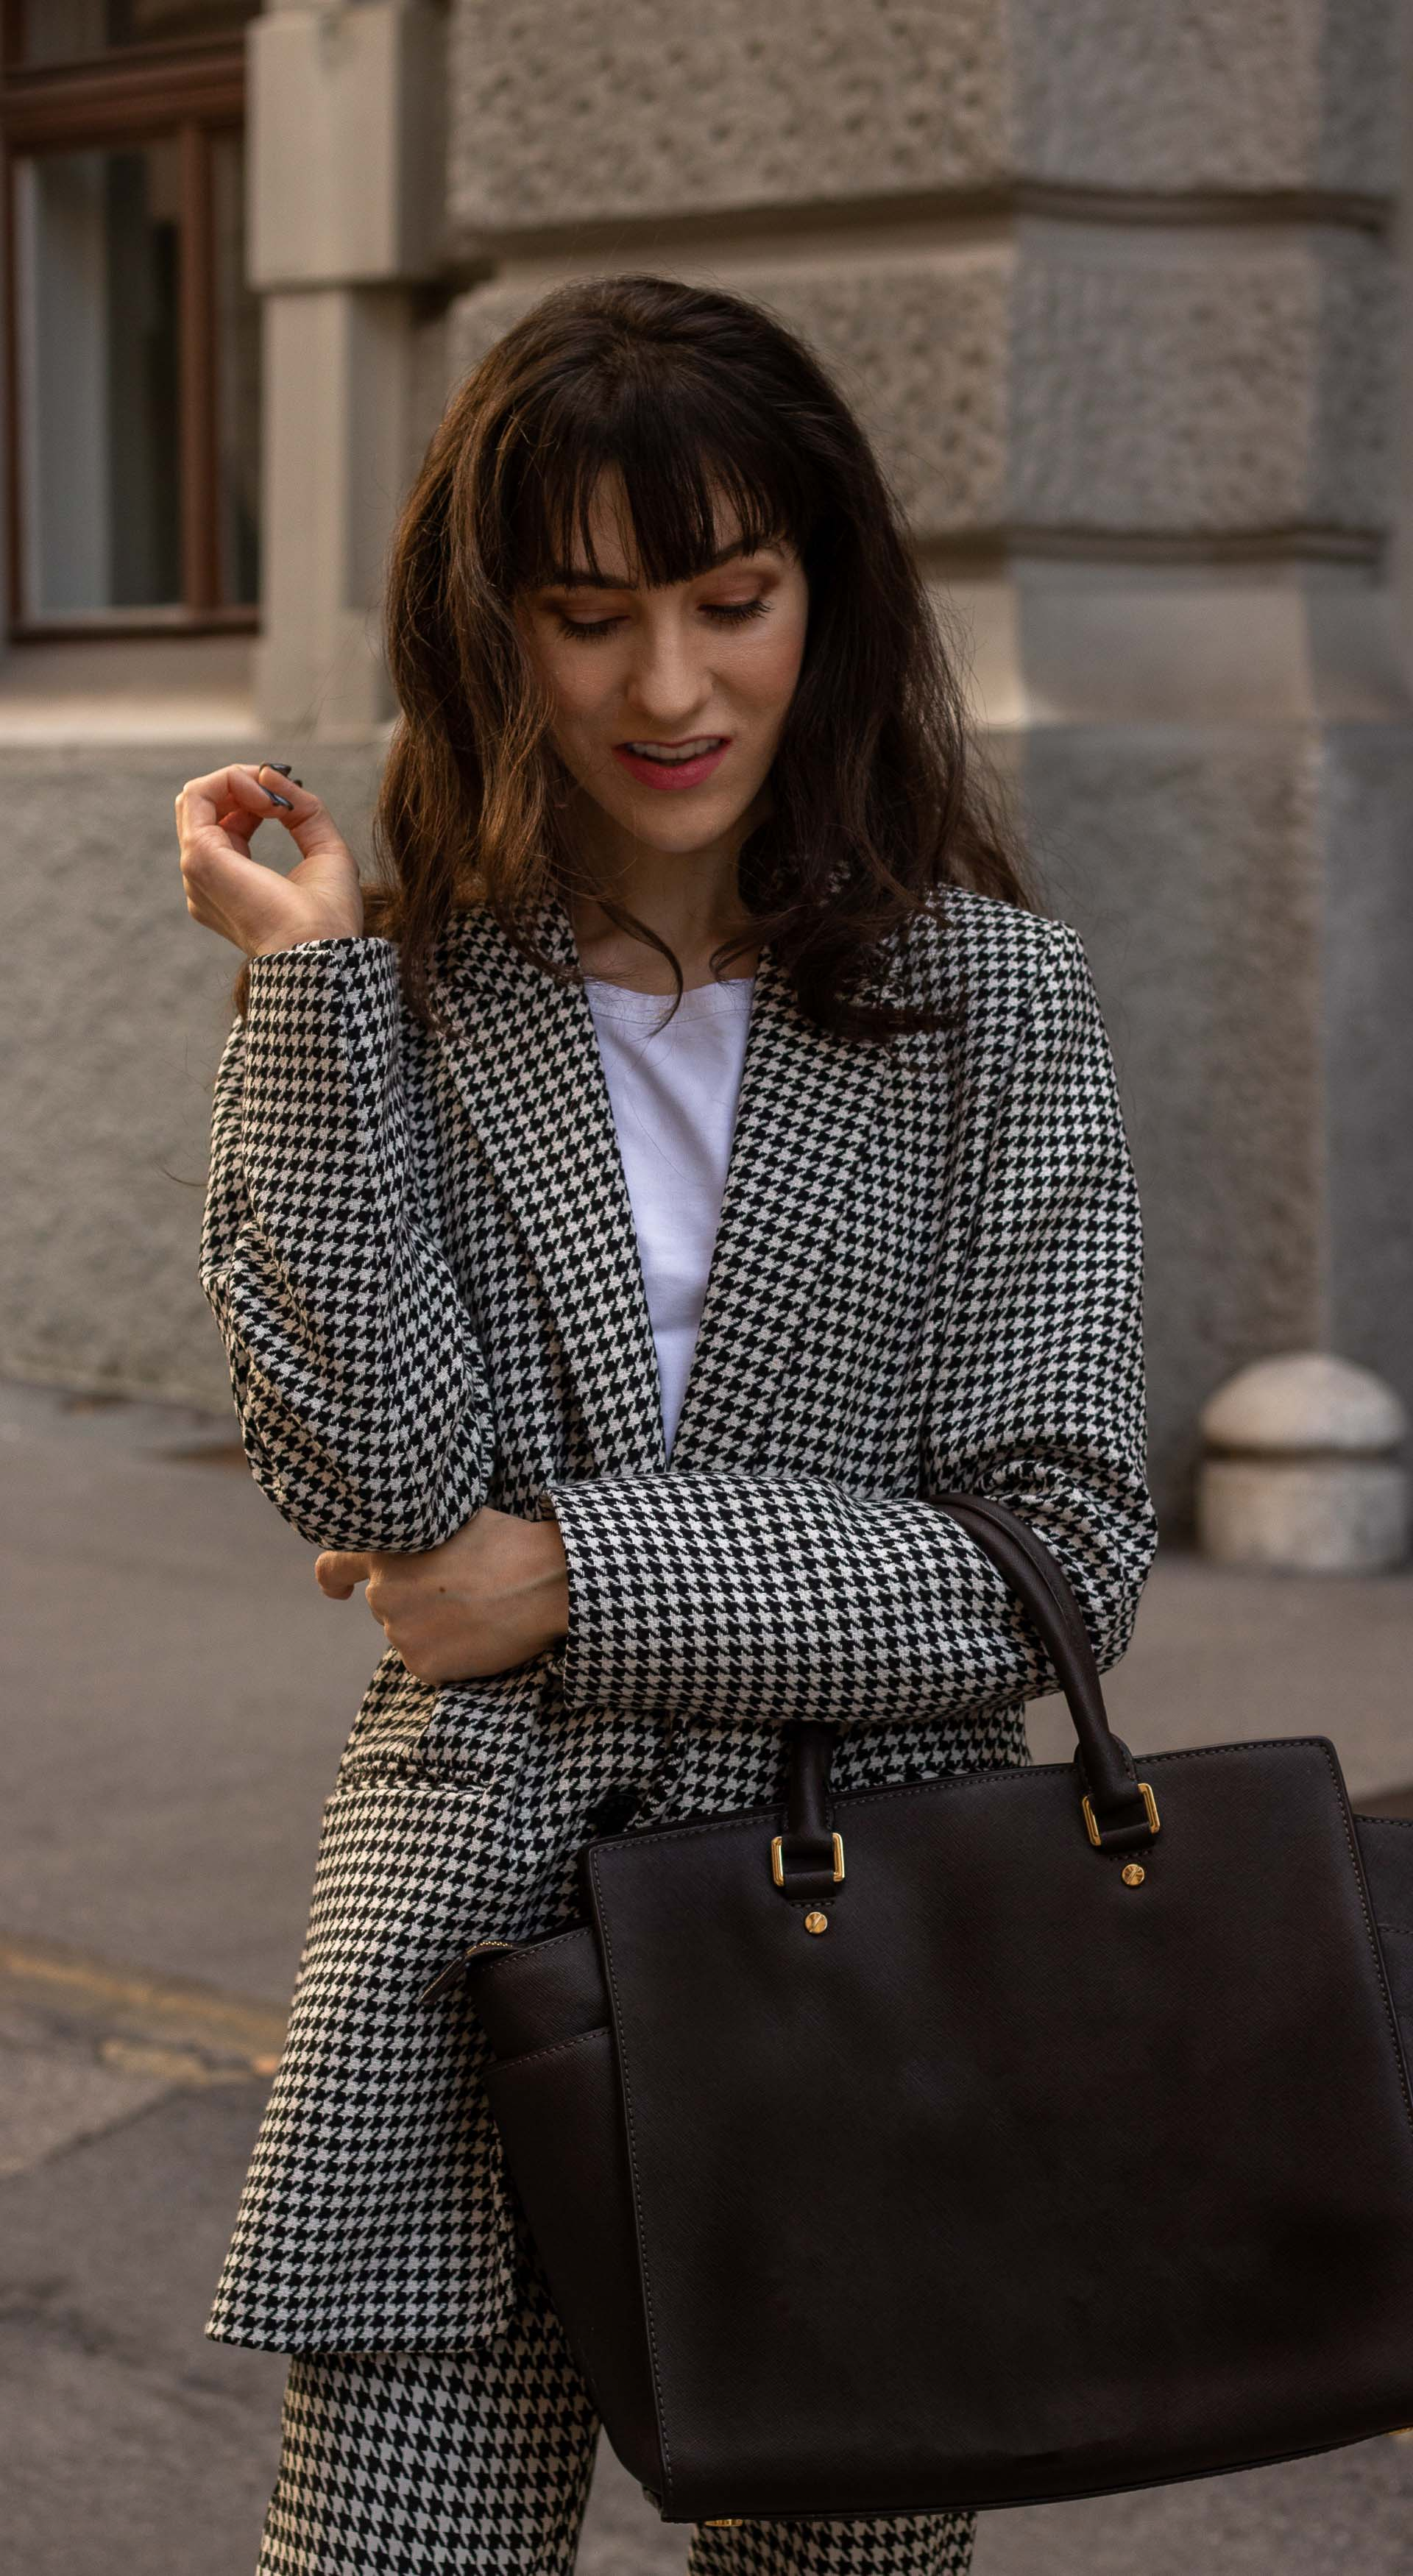 Fashion blogger Veronika Lipar of Brunette from Wall Street dressed in Sandro Paris houndstooth suit Mihael Kors brown tote bag